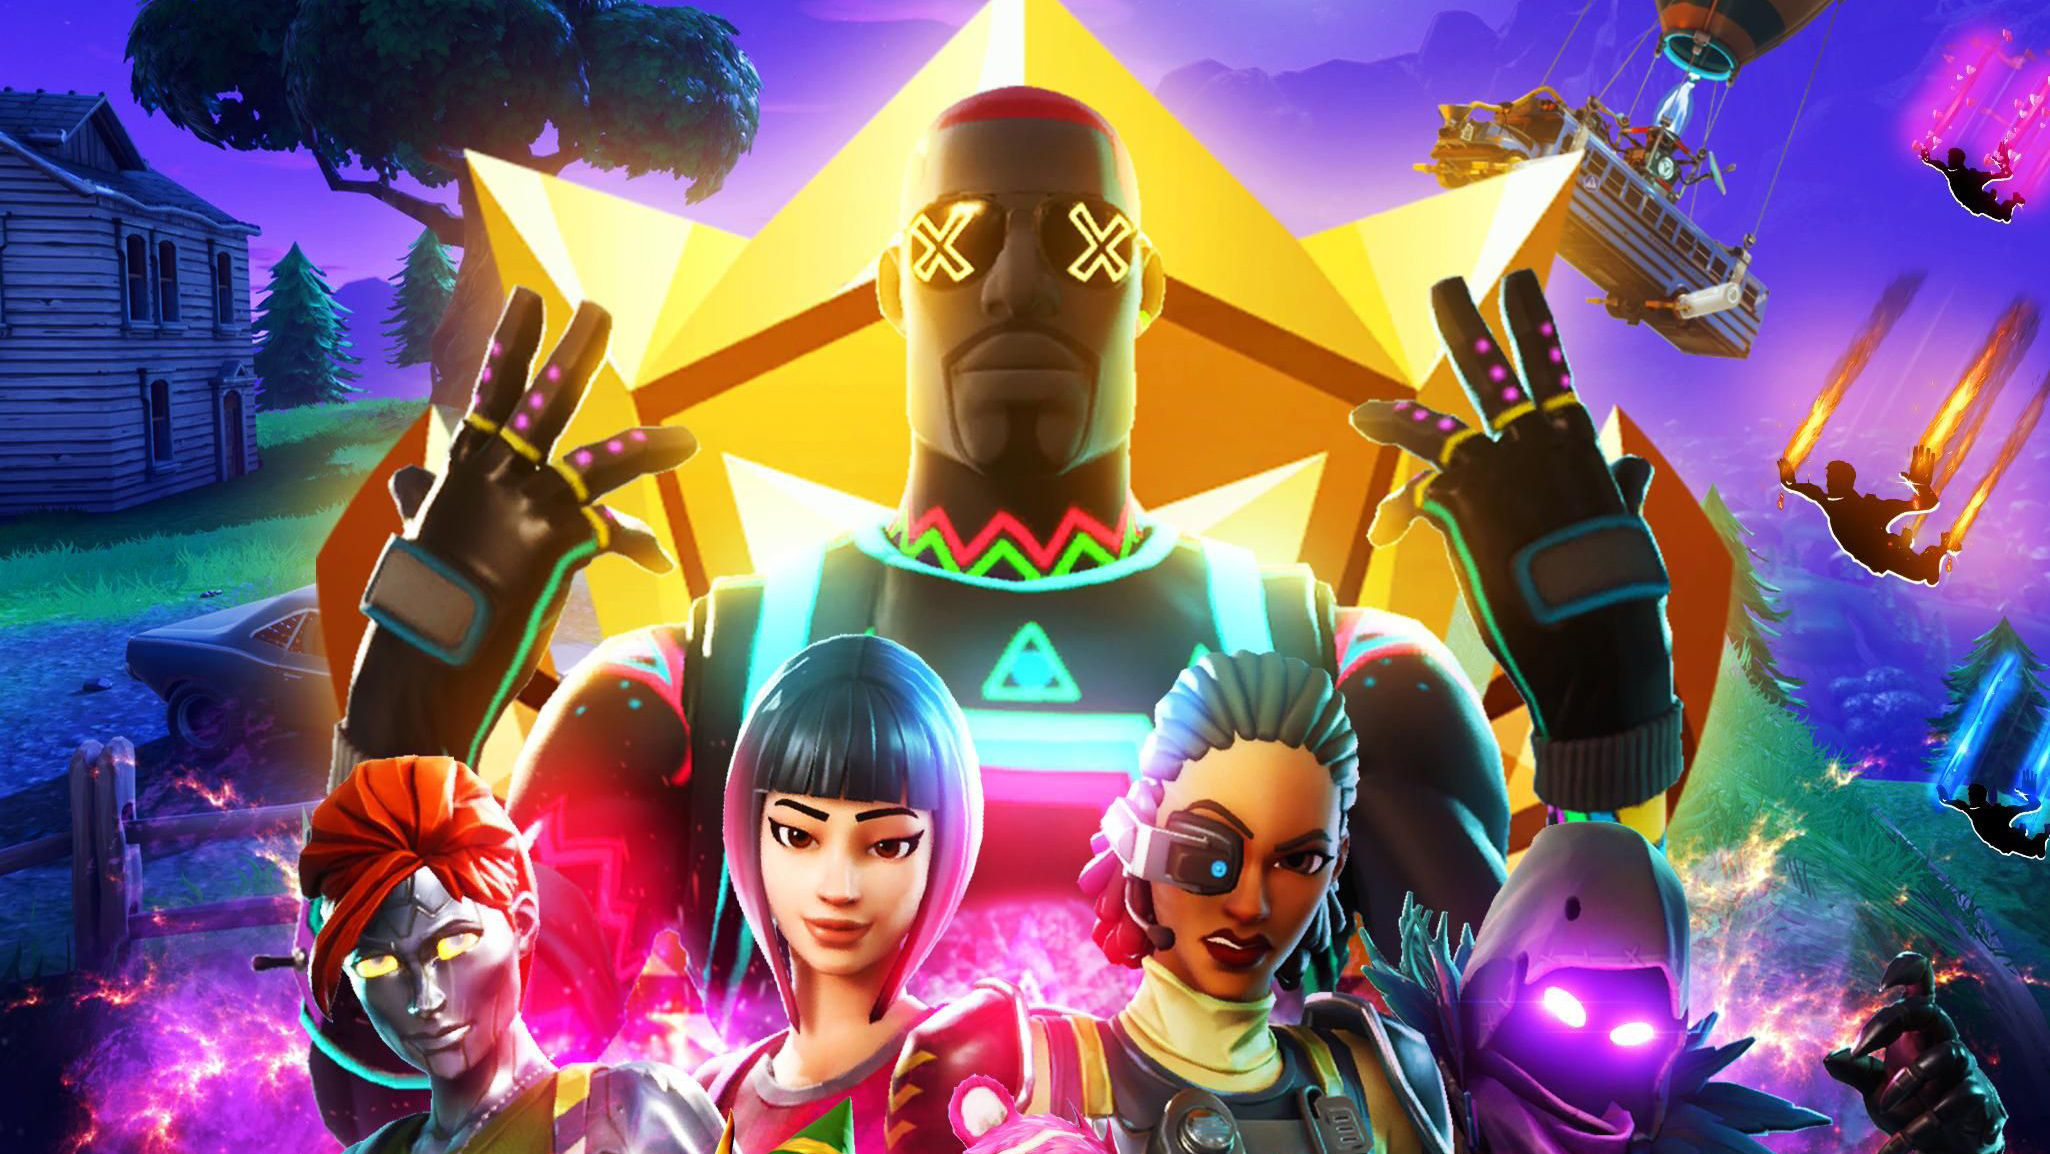 2048x2048 Fortnite Avengers Ipad Air Hd 4k Wallpapers Images Backgrounds Photos And Pictures